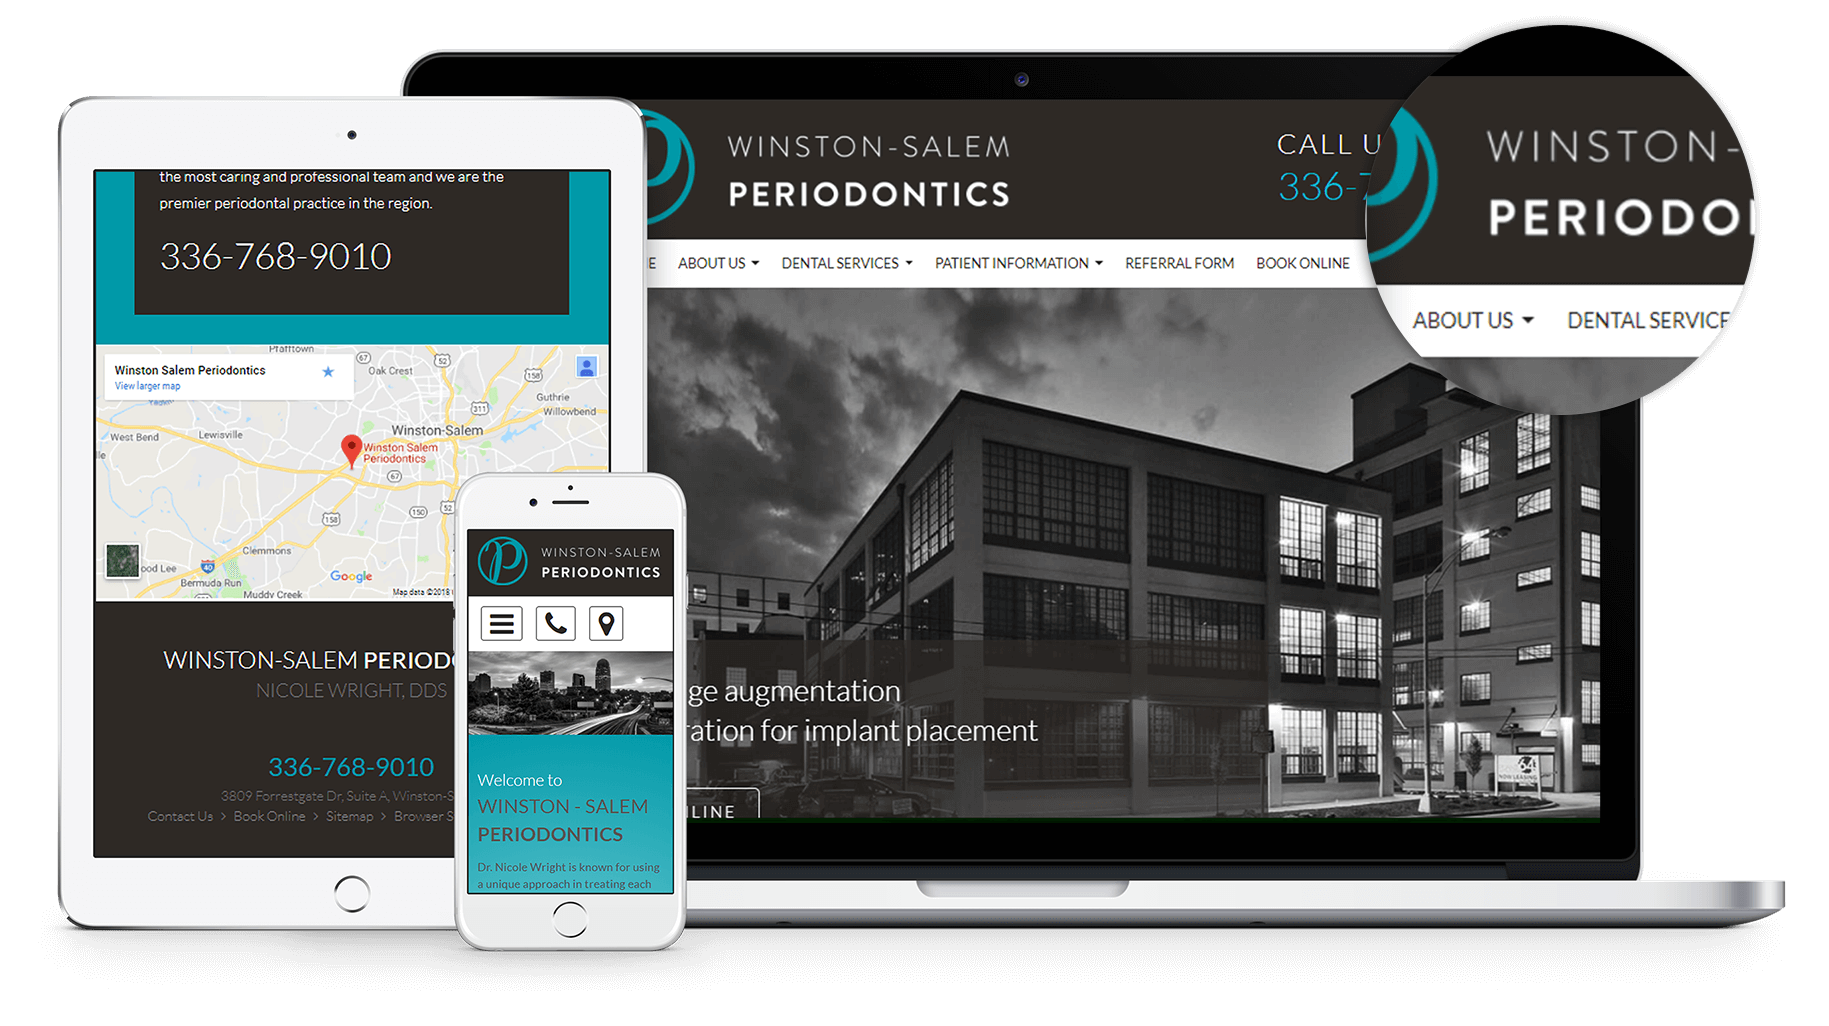 New website for Winston-Salem Periodontics